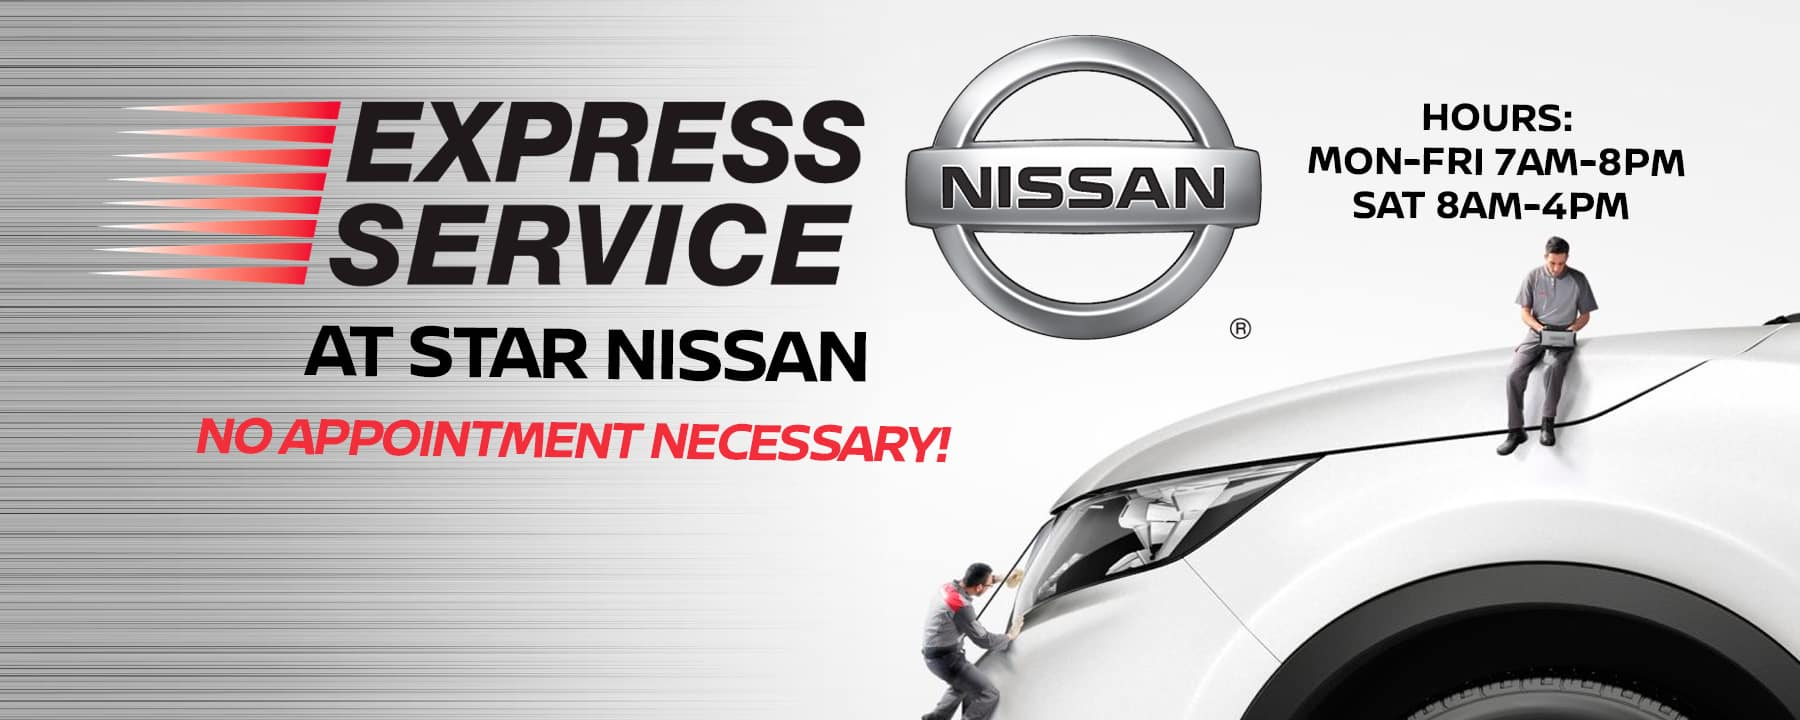 Express Service at Star Nissan!